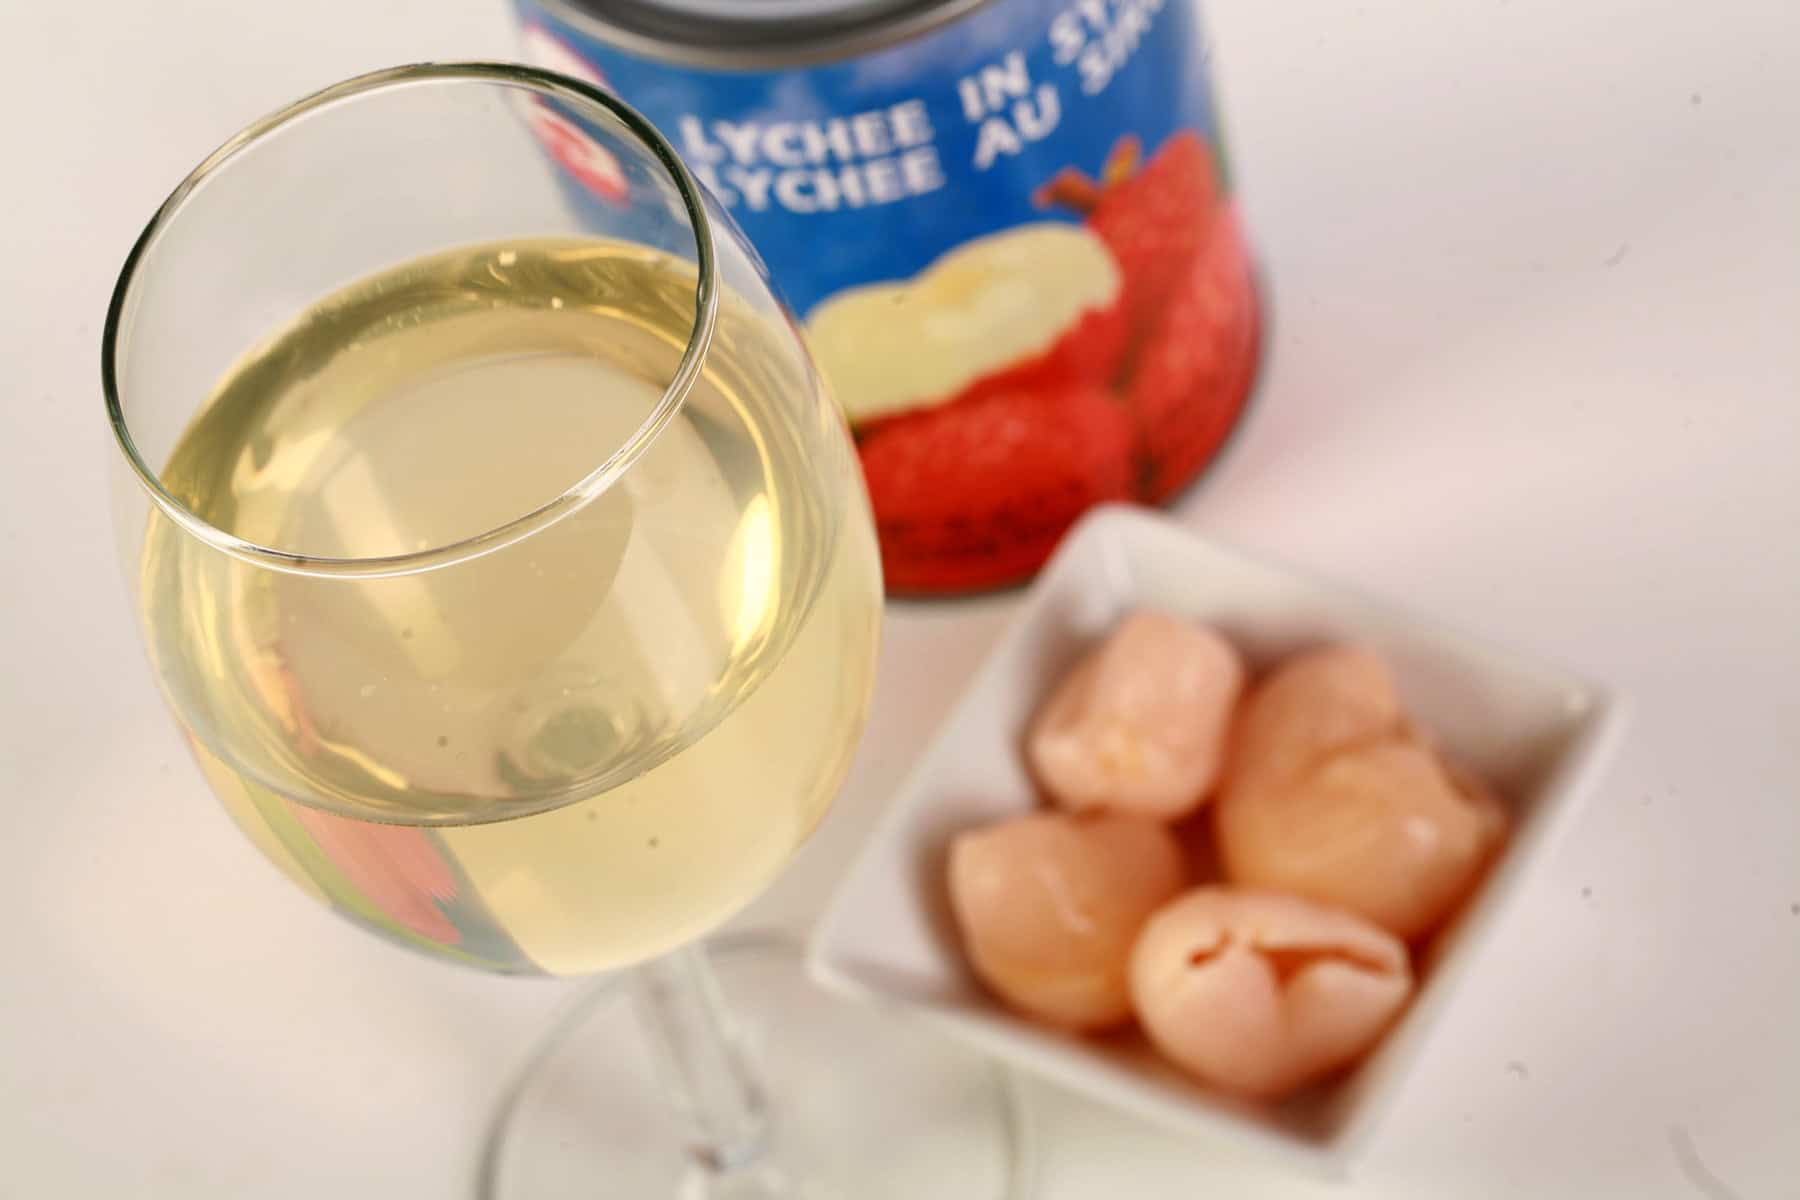 A glass of white wine is shown next to a small bowl of lychee fruit and a can of lychees.